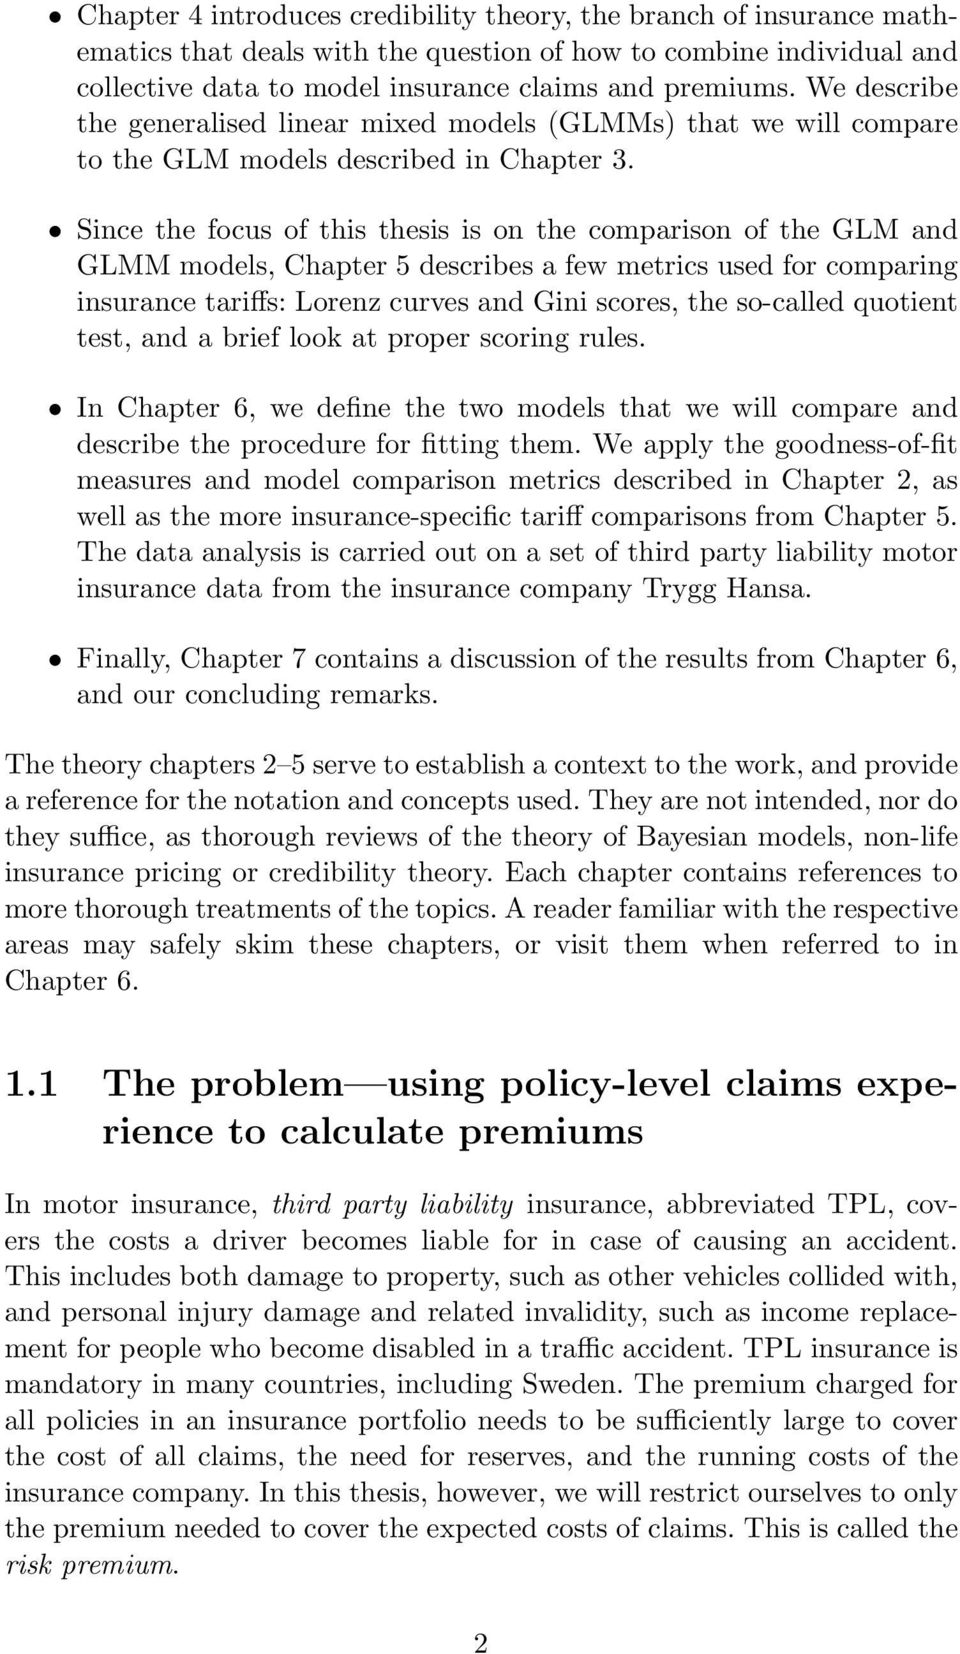 Since the focus of this thesis is on the comparison of the GLM and GLMM models, Chapter 5 describes a few metrics used for comparing insurance tariffs: Lorenz curves and Gini scores, the so-called